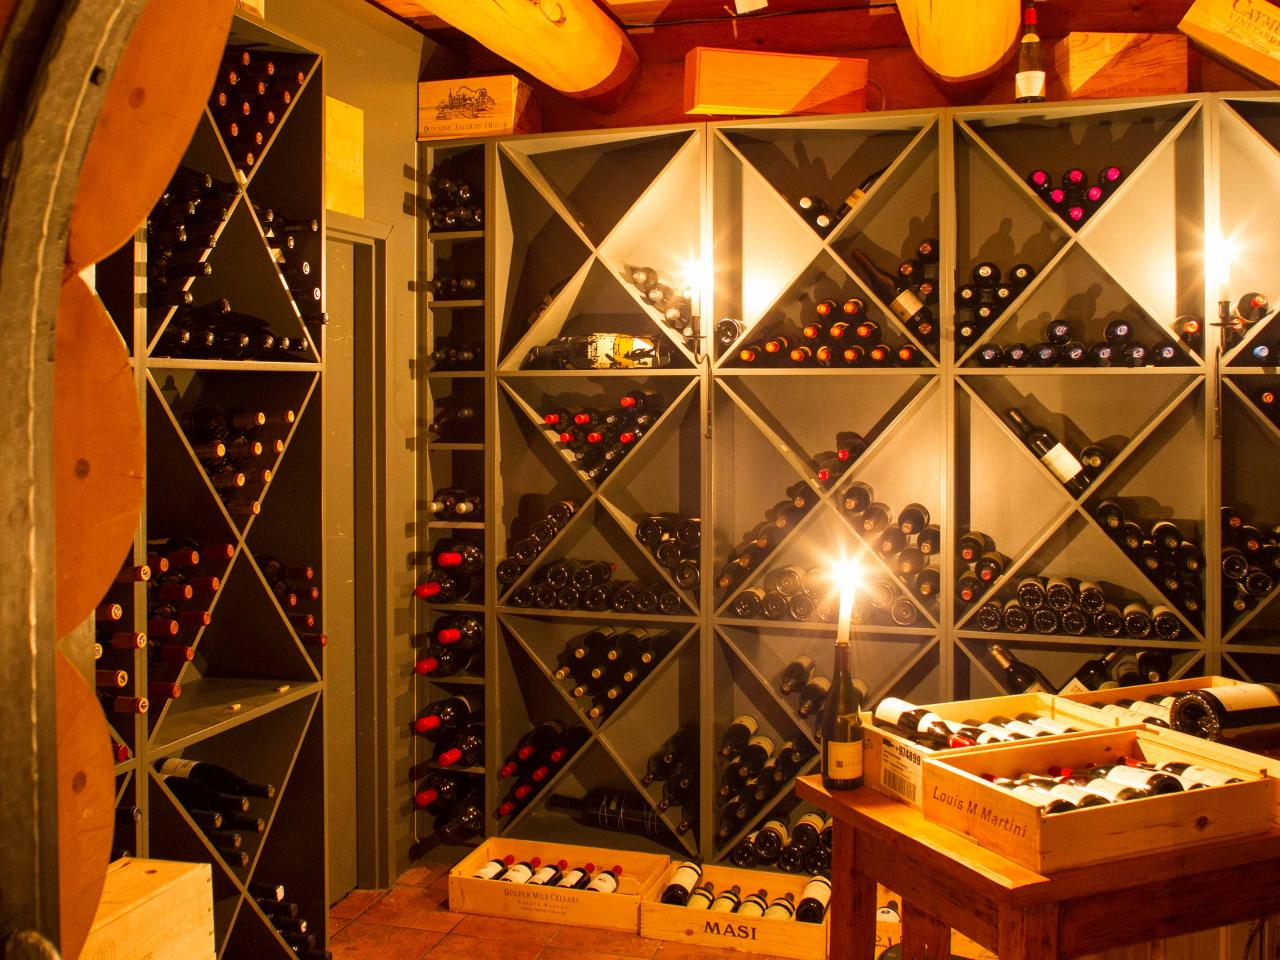 Award winning wine cellar at world's finest helicopter ski resort.